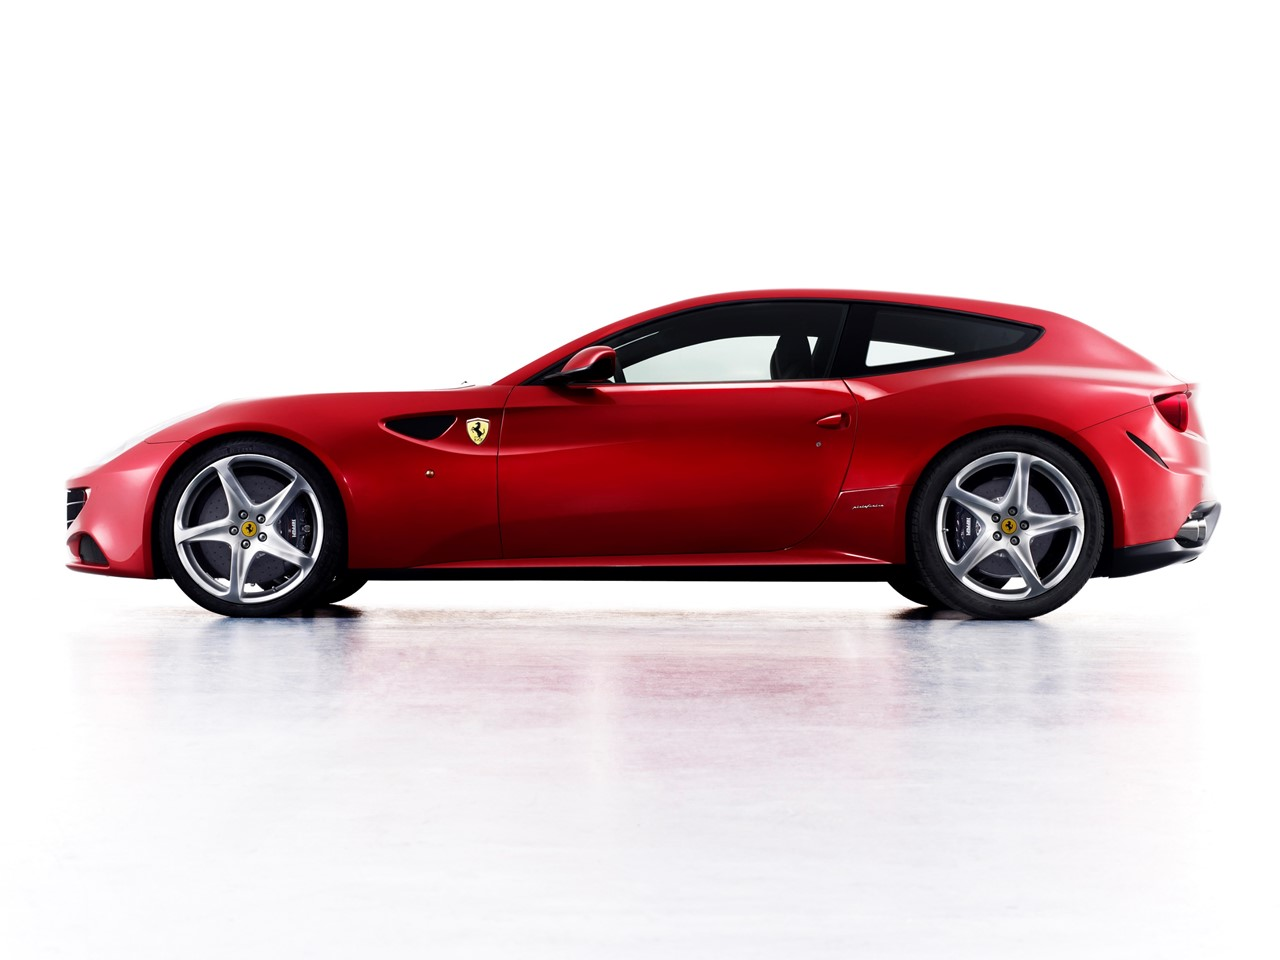 2015 ferrari ff: a prancing horse of a different breed